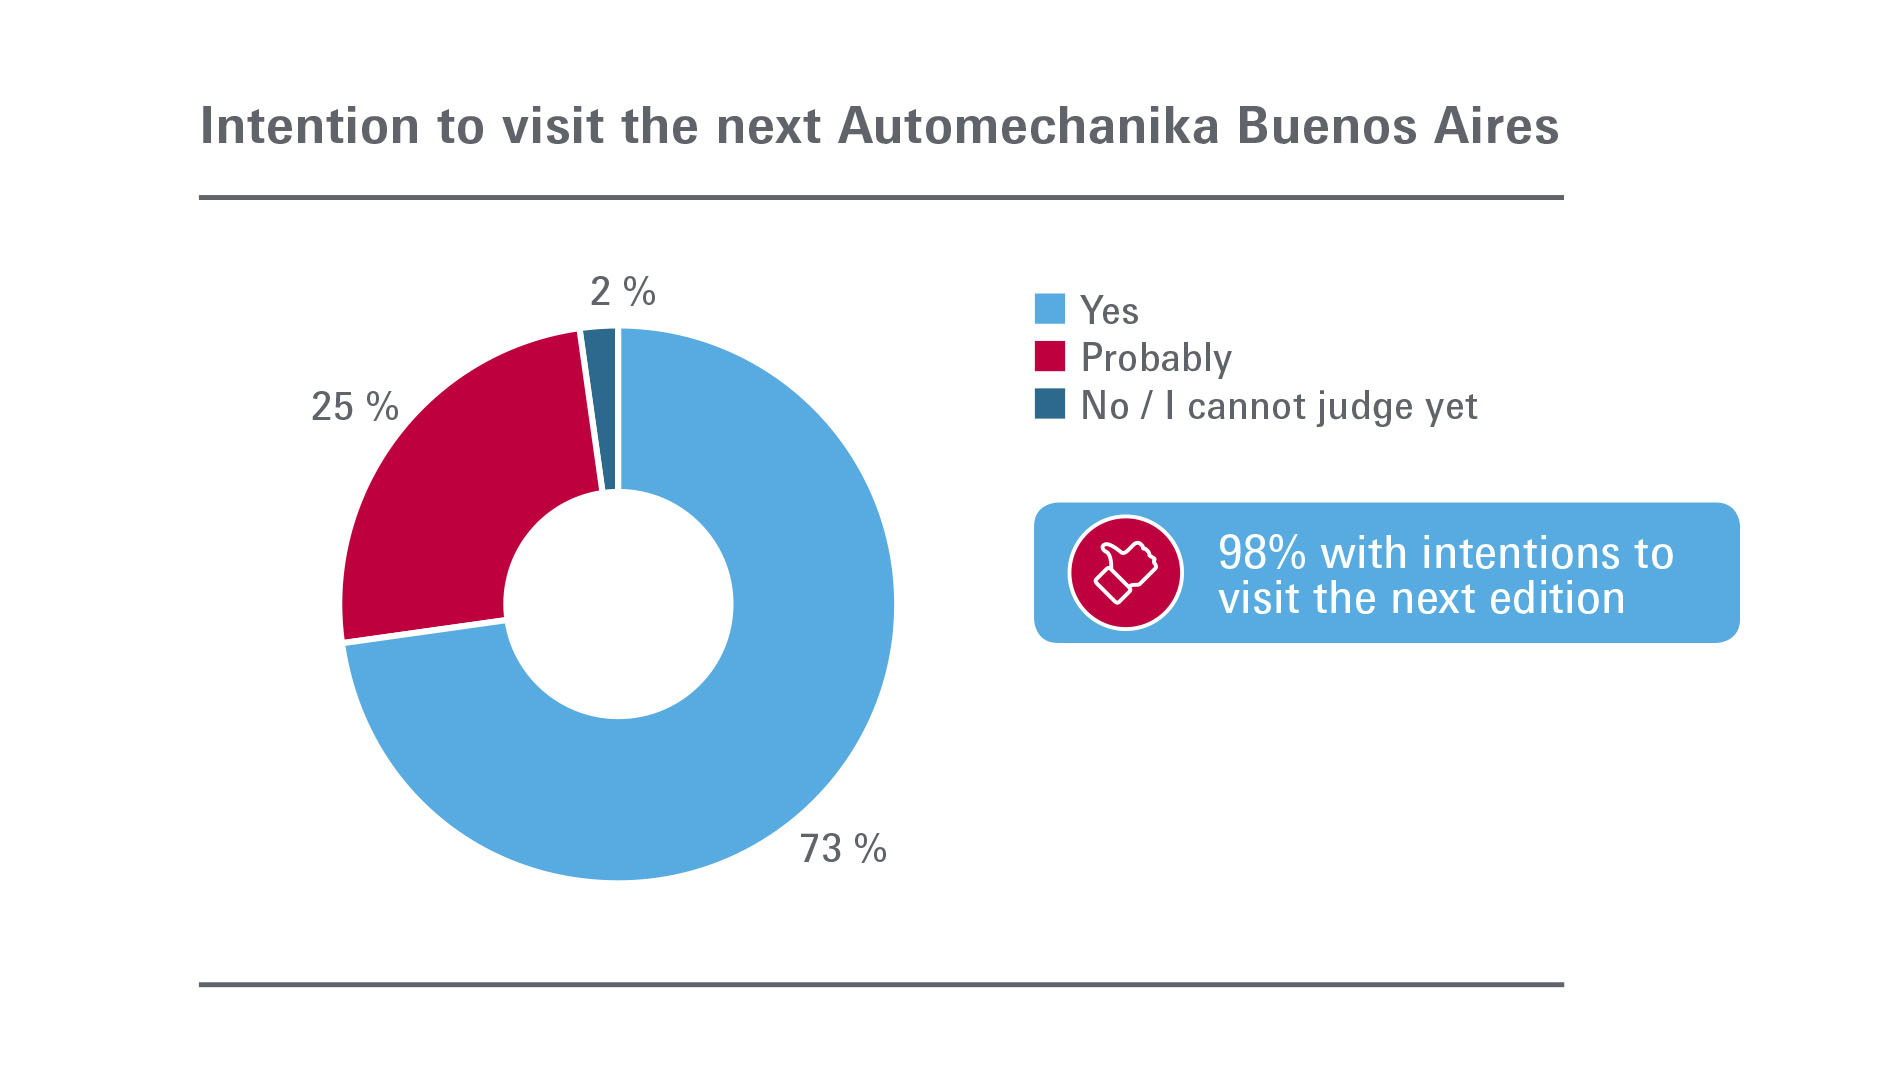 Automechanika Buenos Aires: Visitors - intention to visit next edition